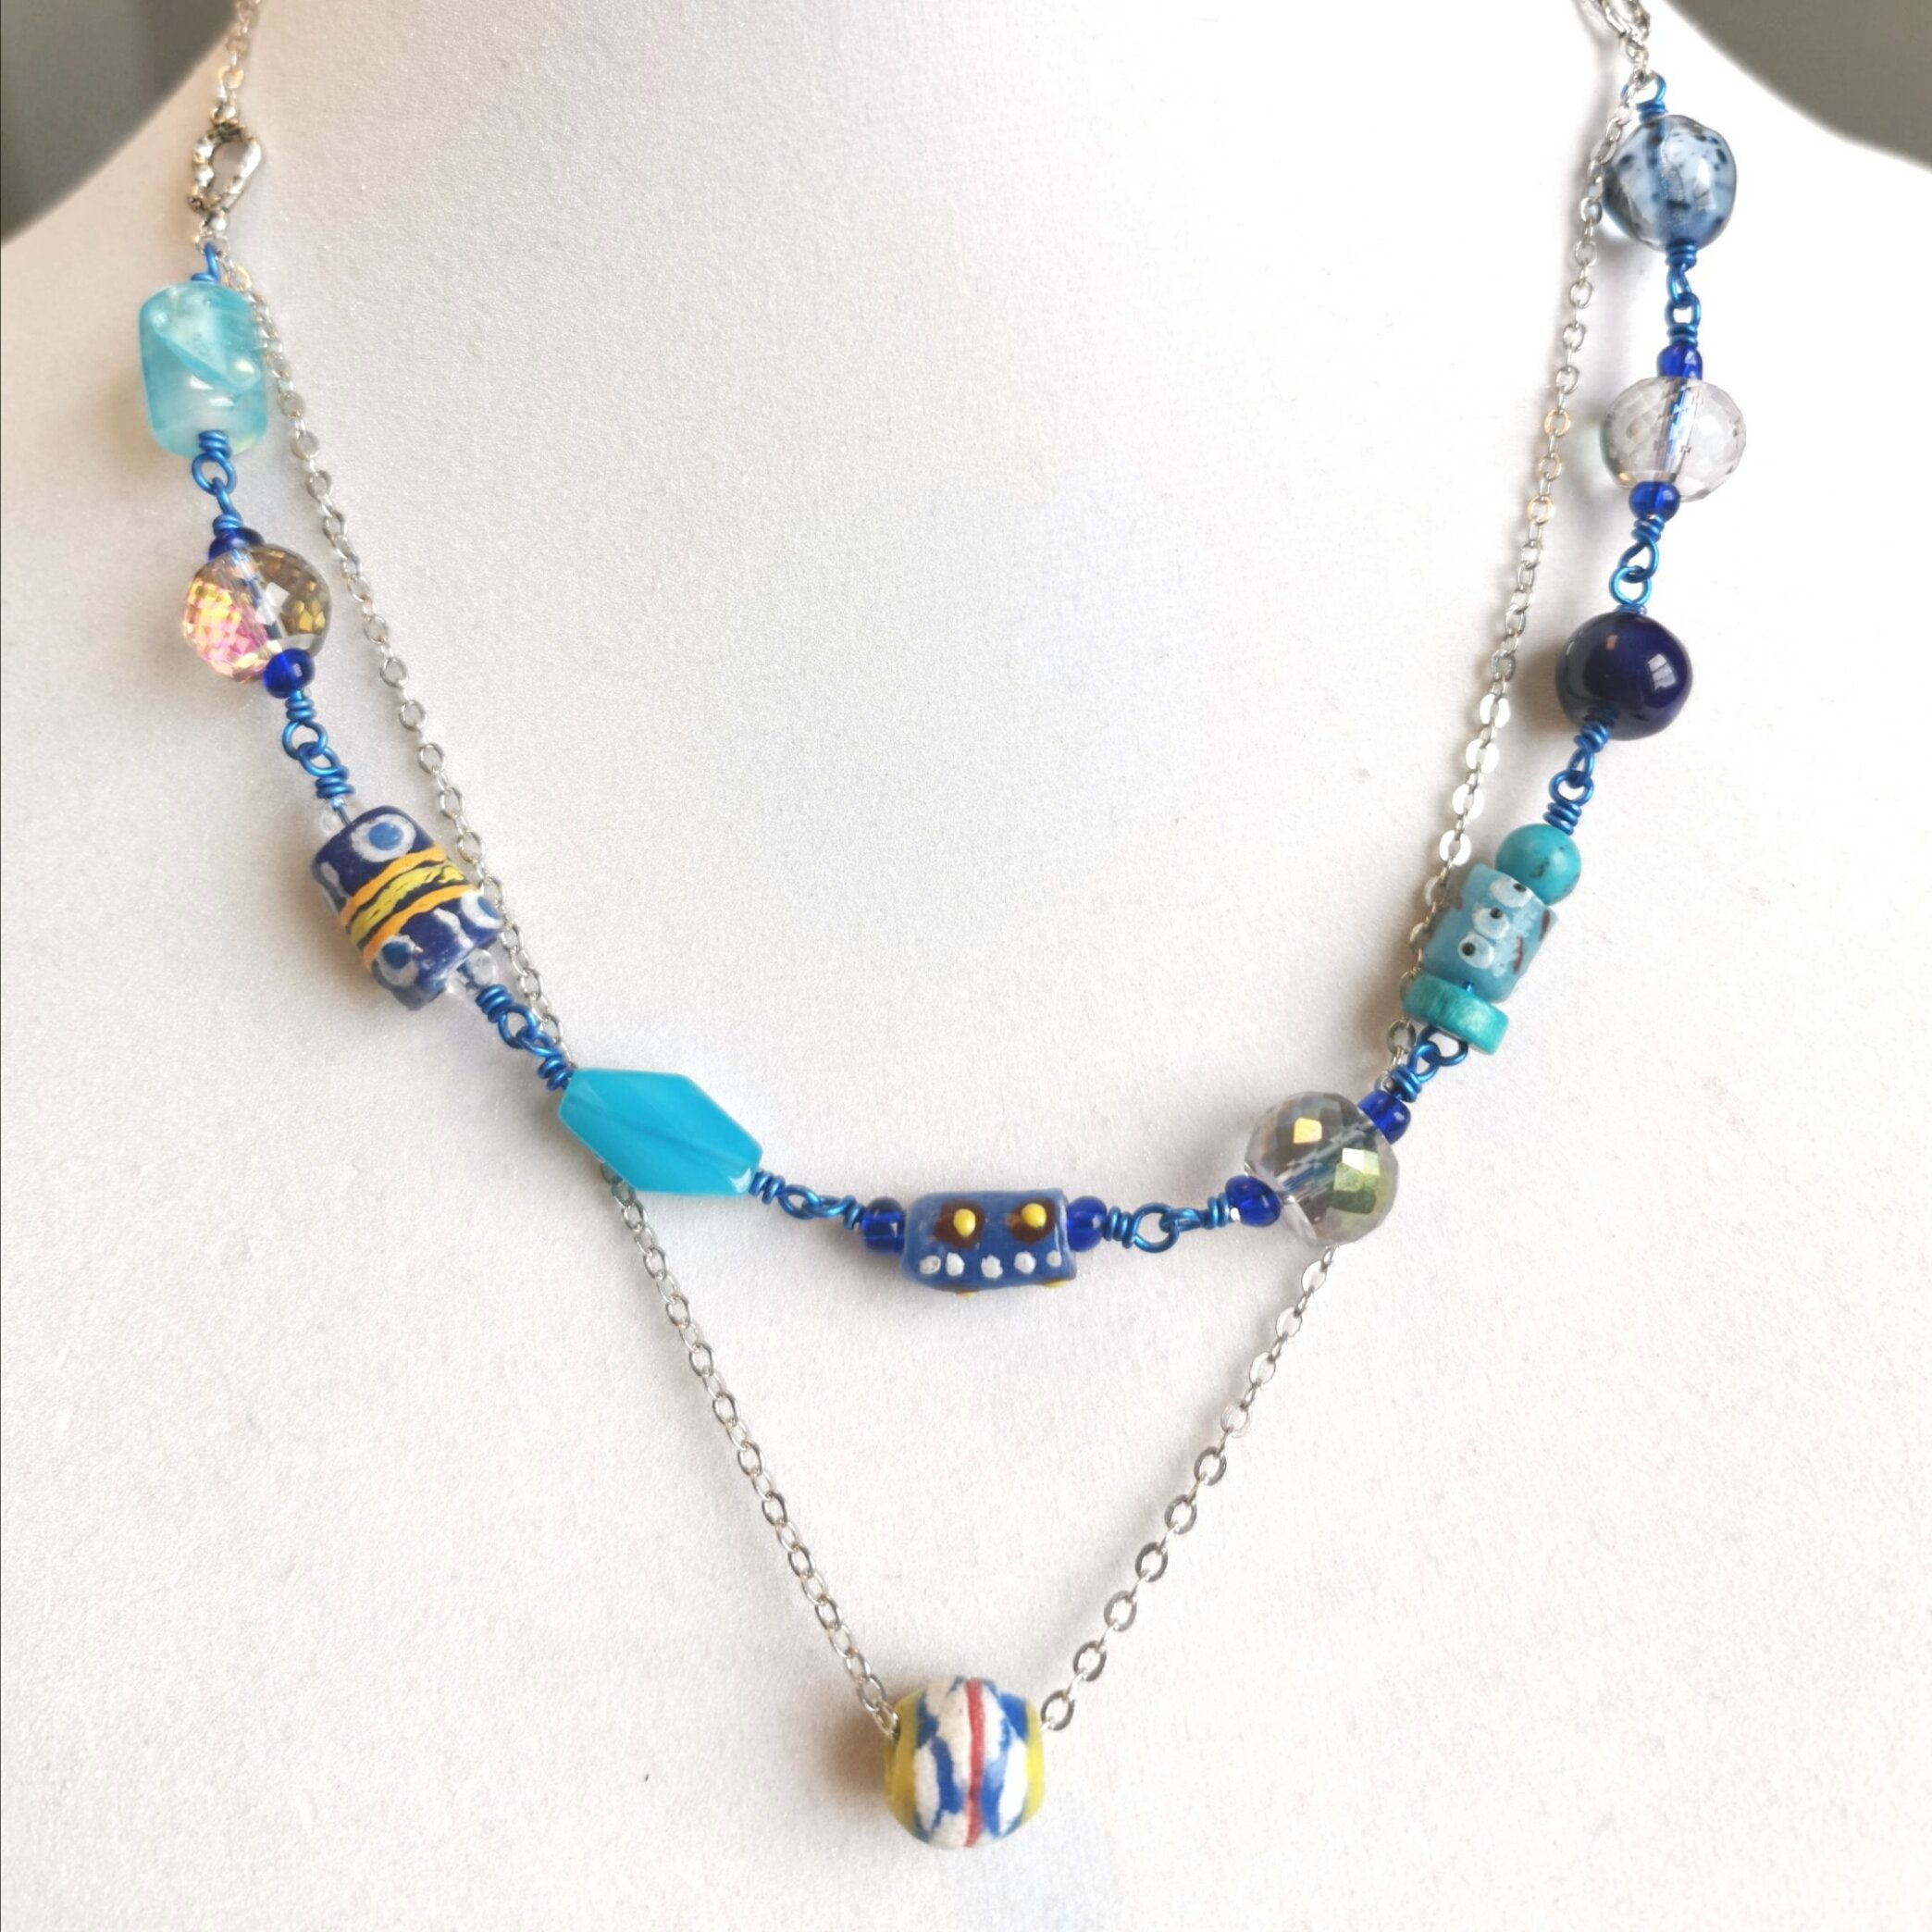 20 inch layered necklace one of a kind unique beads